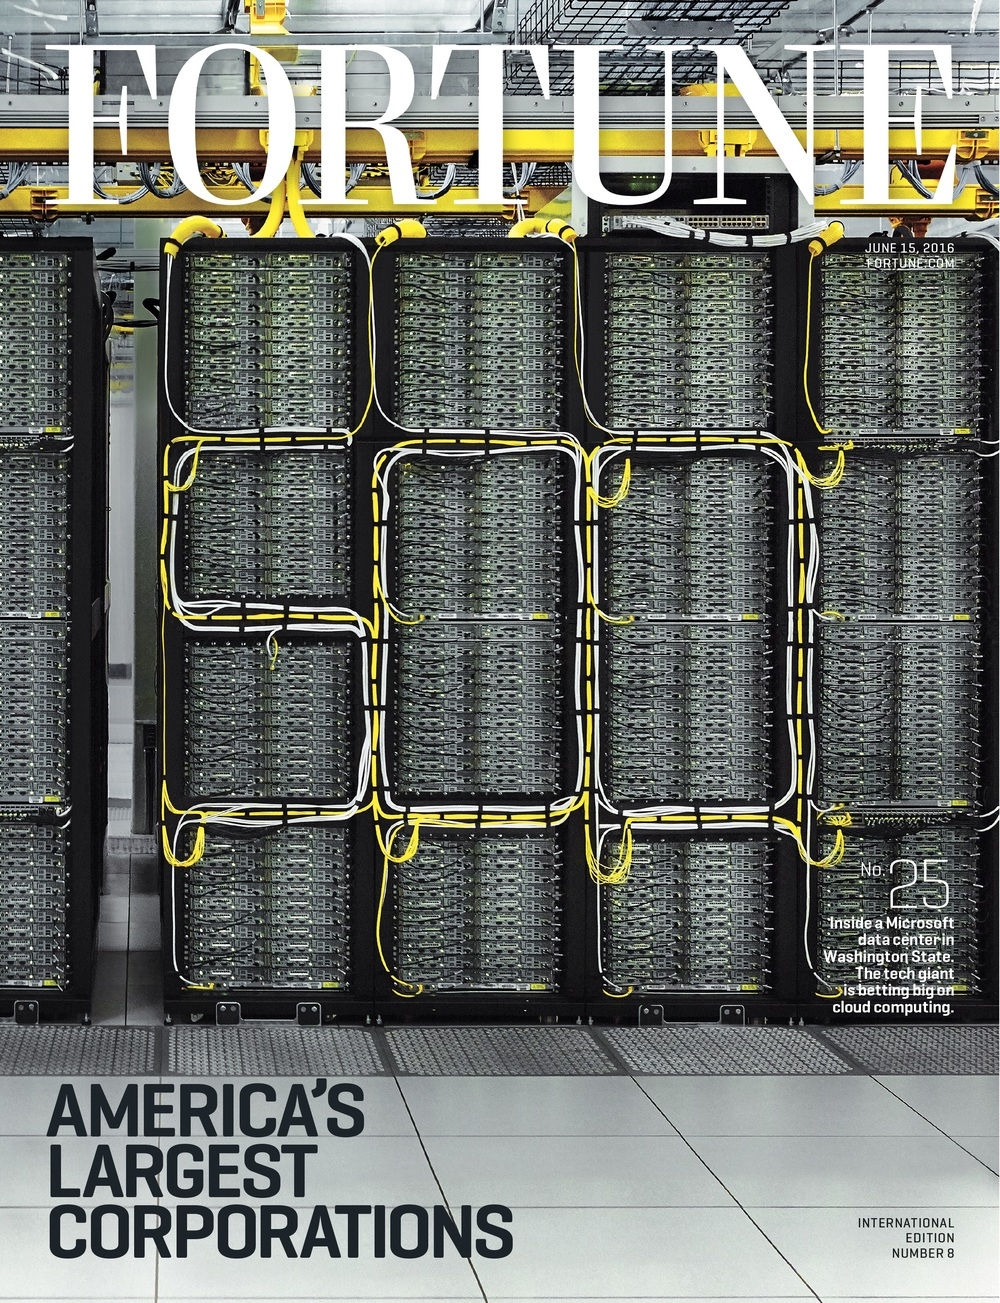 International print edition of the Fortune 500 cover. Photo by Michael Clinard for Fortune Magazine. Photo Editor, Armin Harris; Retouching, Zach Vitale.